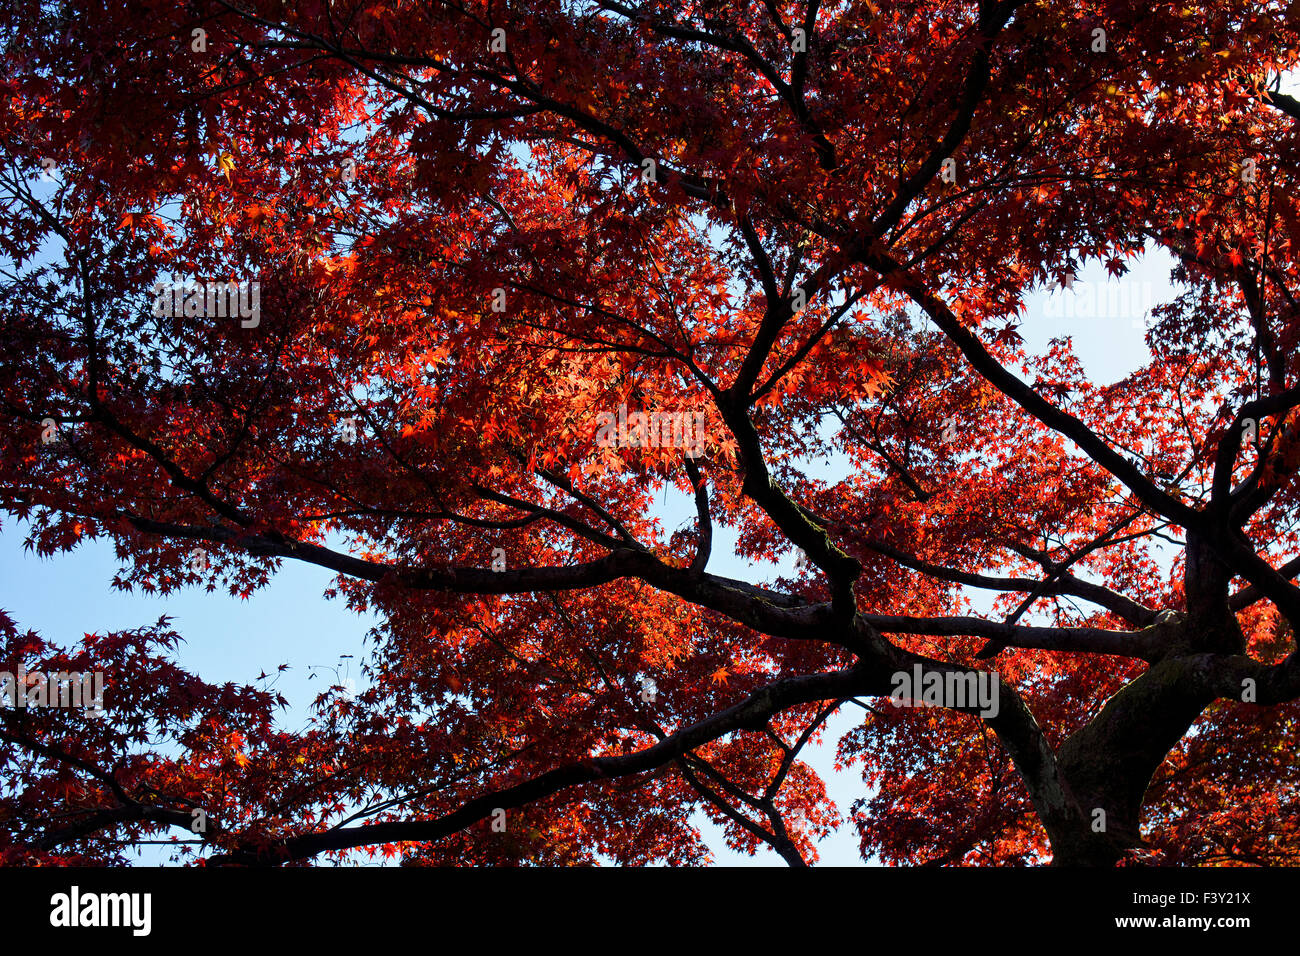 Japan, Honshu island, Kansai, Kyoto, maple in autumn. - Stock Image